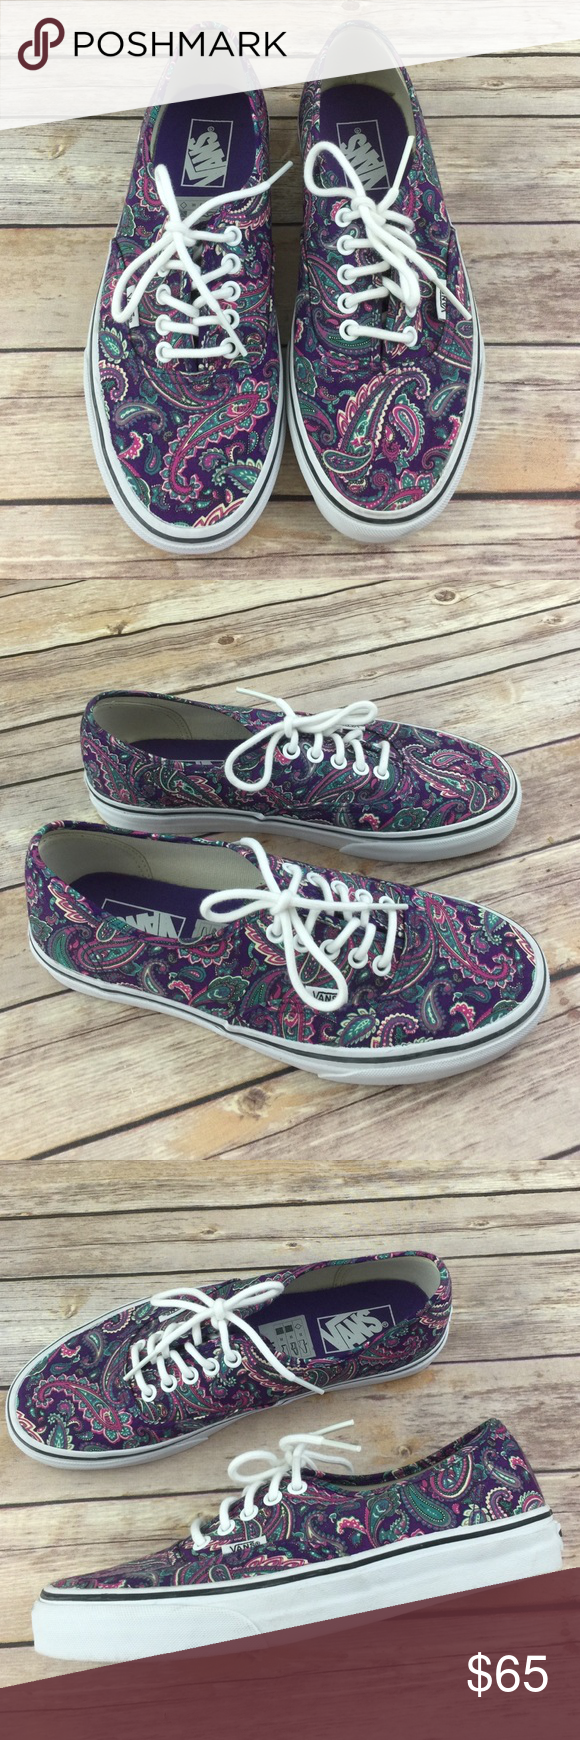 92d26da94f23d8 Vans Purple Paisley Classic Shoes NEW RARE Love love love these. They were  super hard to get. Took me awhile to get my hands on them. These are a  tight 9.